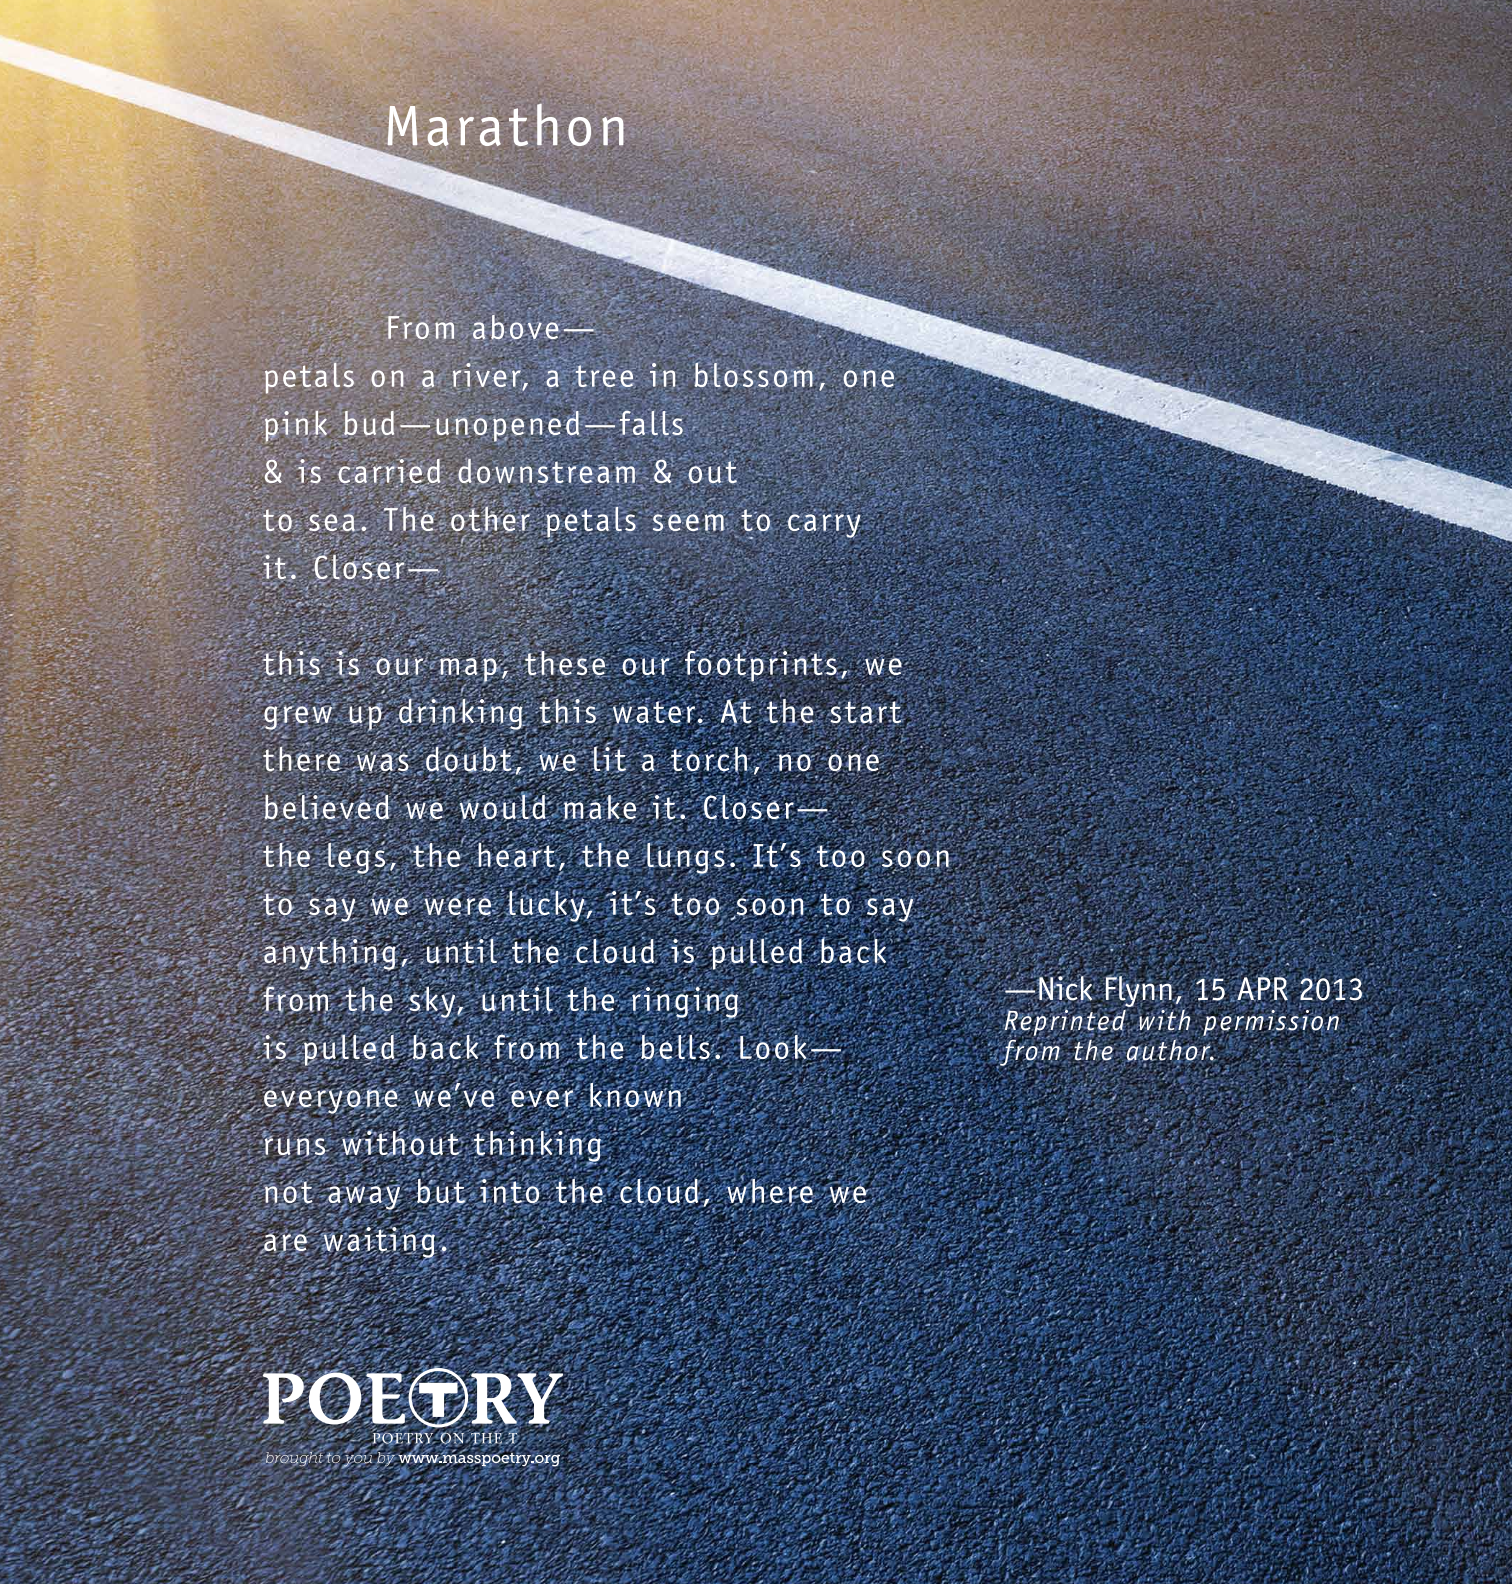 mass-poetry-t-ads-04-car-card-low_003.png